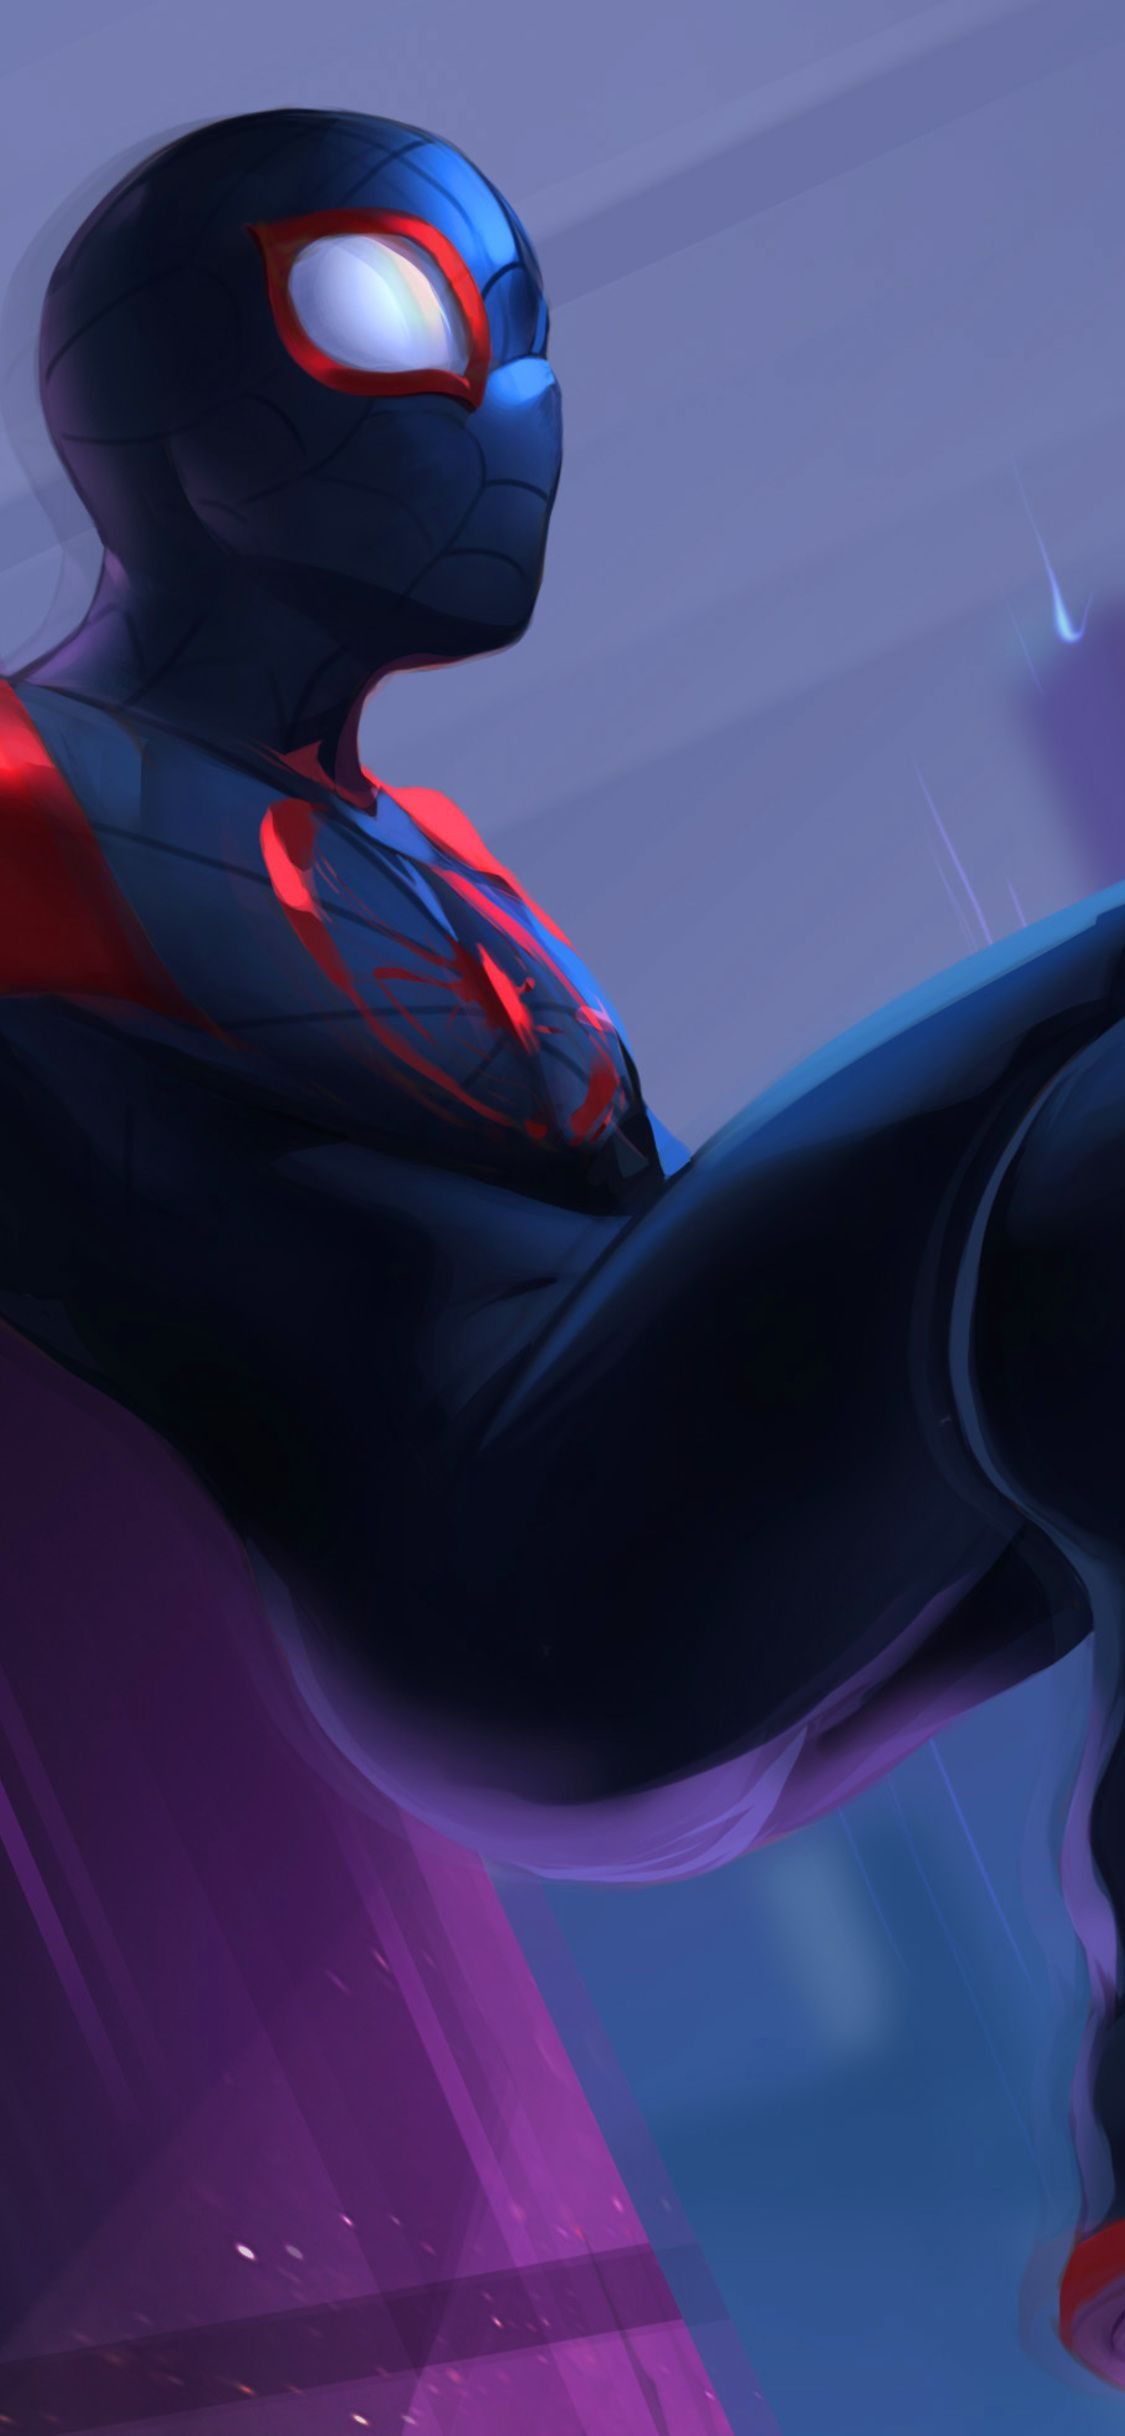 1125x2436 Spiderman Into The Spider Verse 2018 Fan Art Iphone Xs Iphone 10 Iphone X Hd 4k Wallpapers Images Backgroun Spiderman Spider Verse Iphone Wallpaper